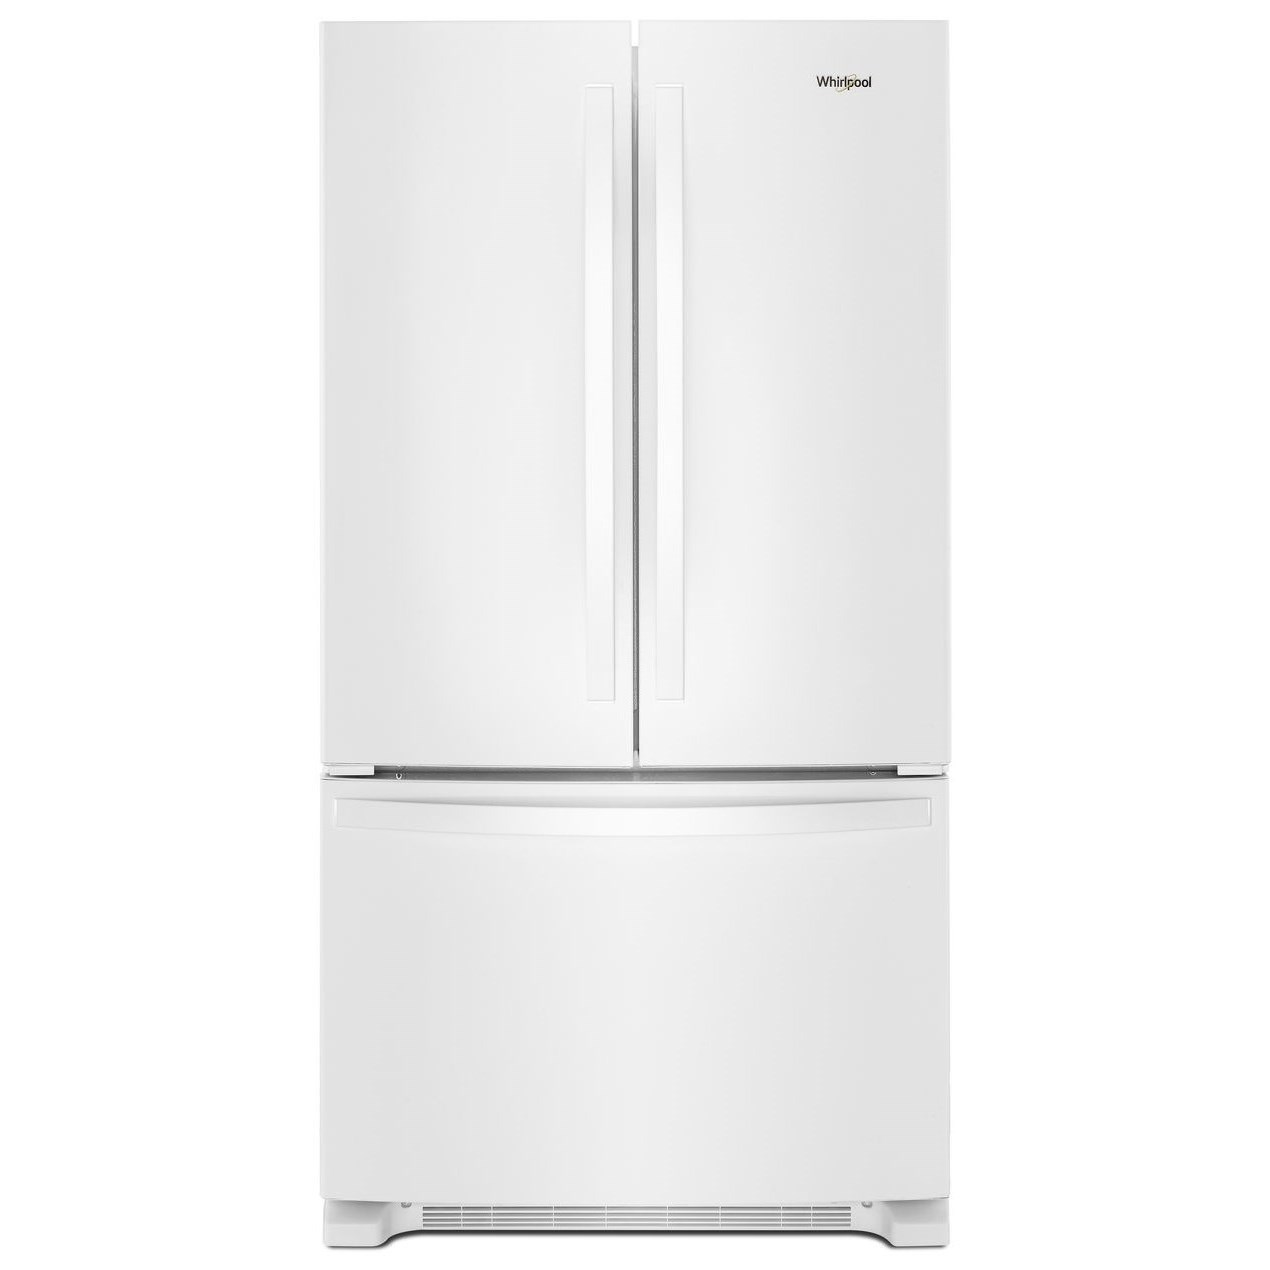 French Door Refrigerators 36-inch Wide French Door Refrigerator by Whirlpool at Wilcox Furniture